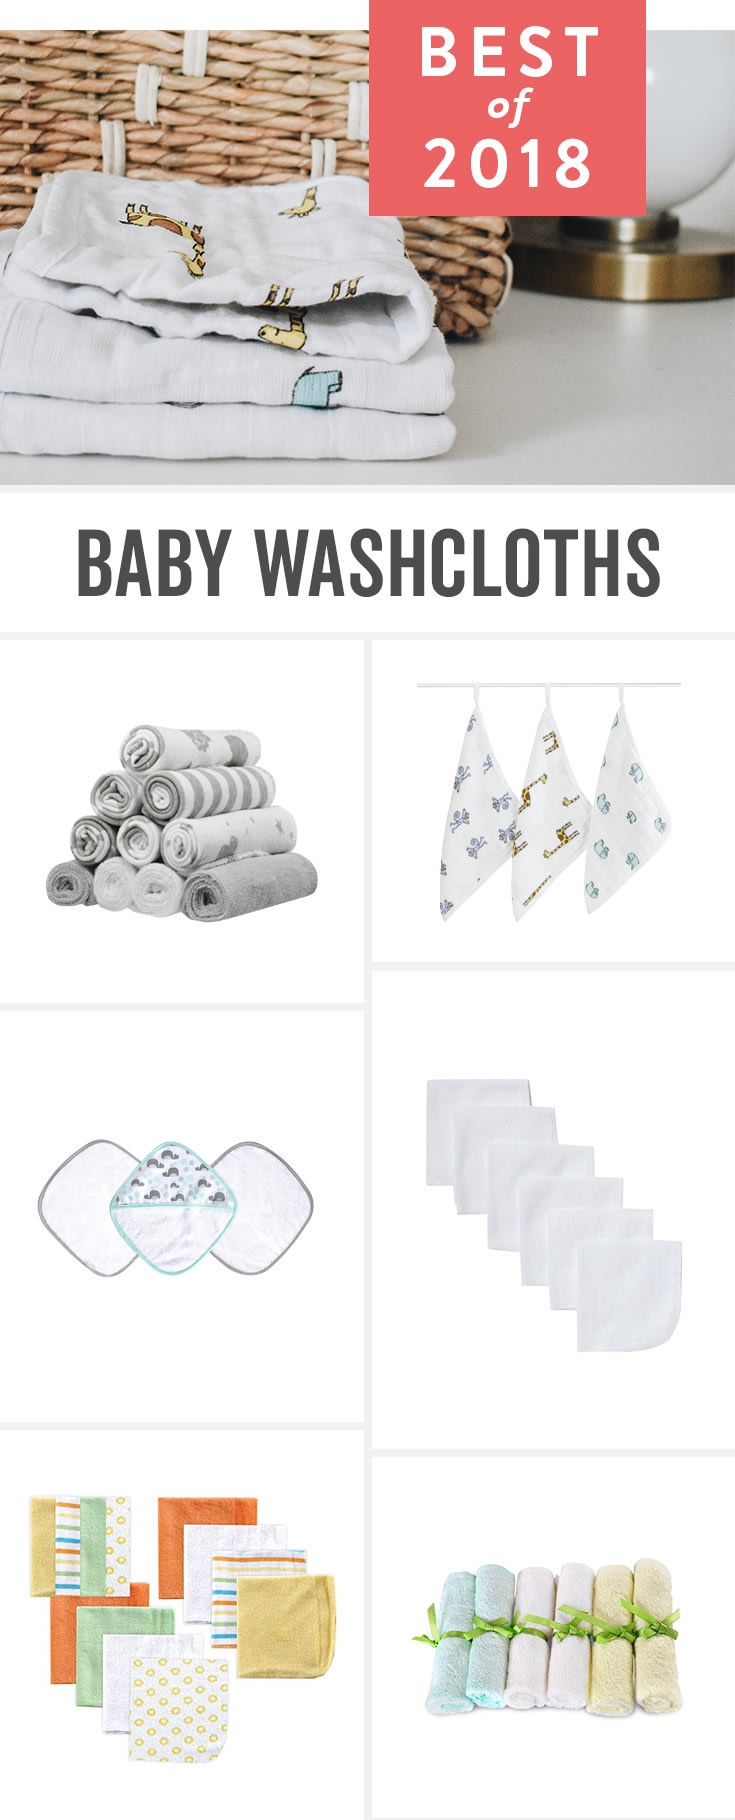 Baby washcloth ideas and new parent favorites including organic and super soft bathtime options for baby. Add your favorites to your baby registry!